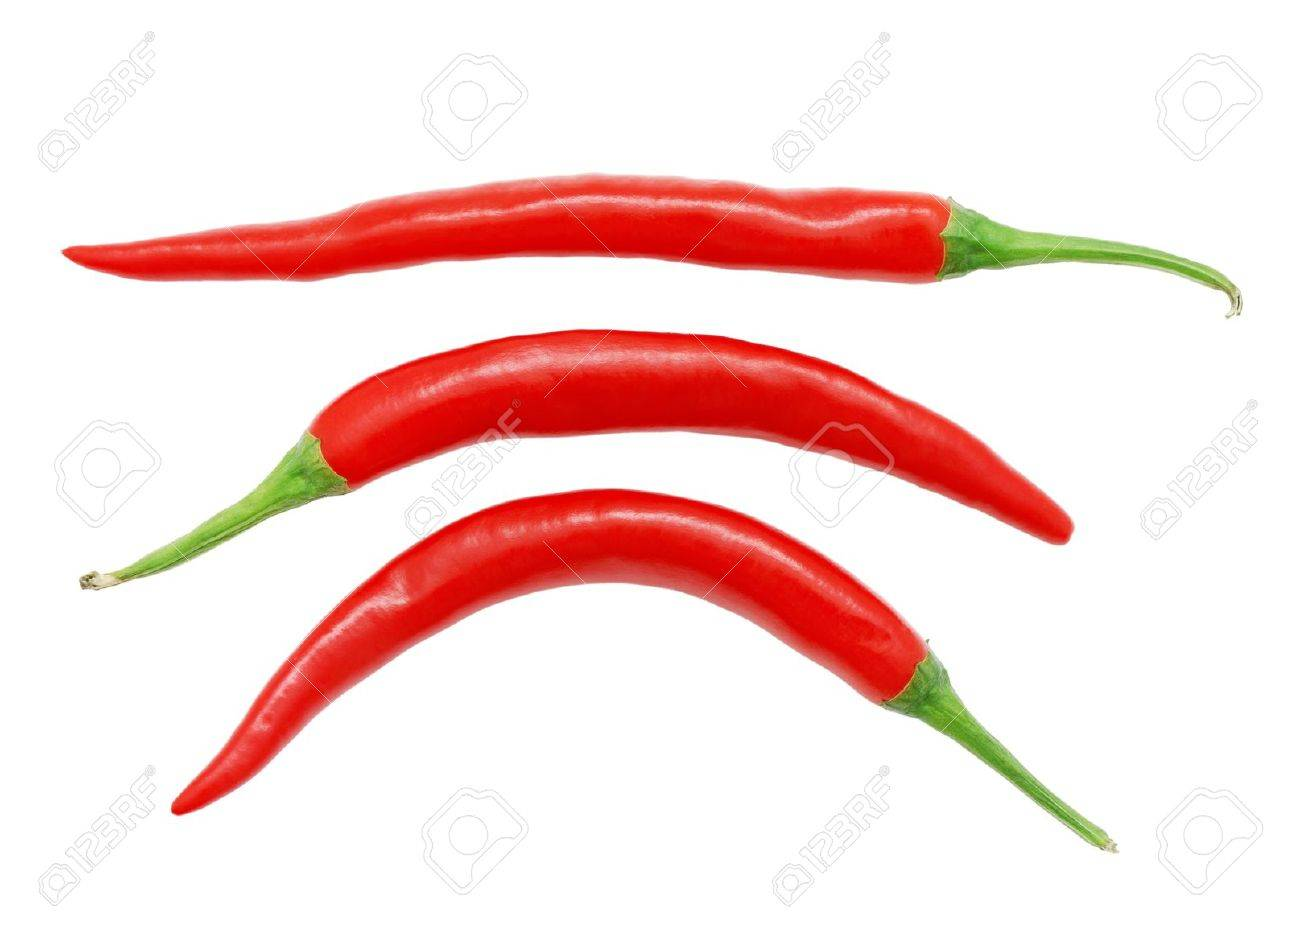 Three red hot chili peppers isolated on white background Stock Photo - 10676596